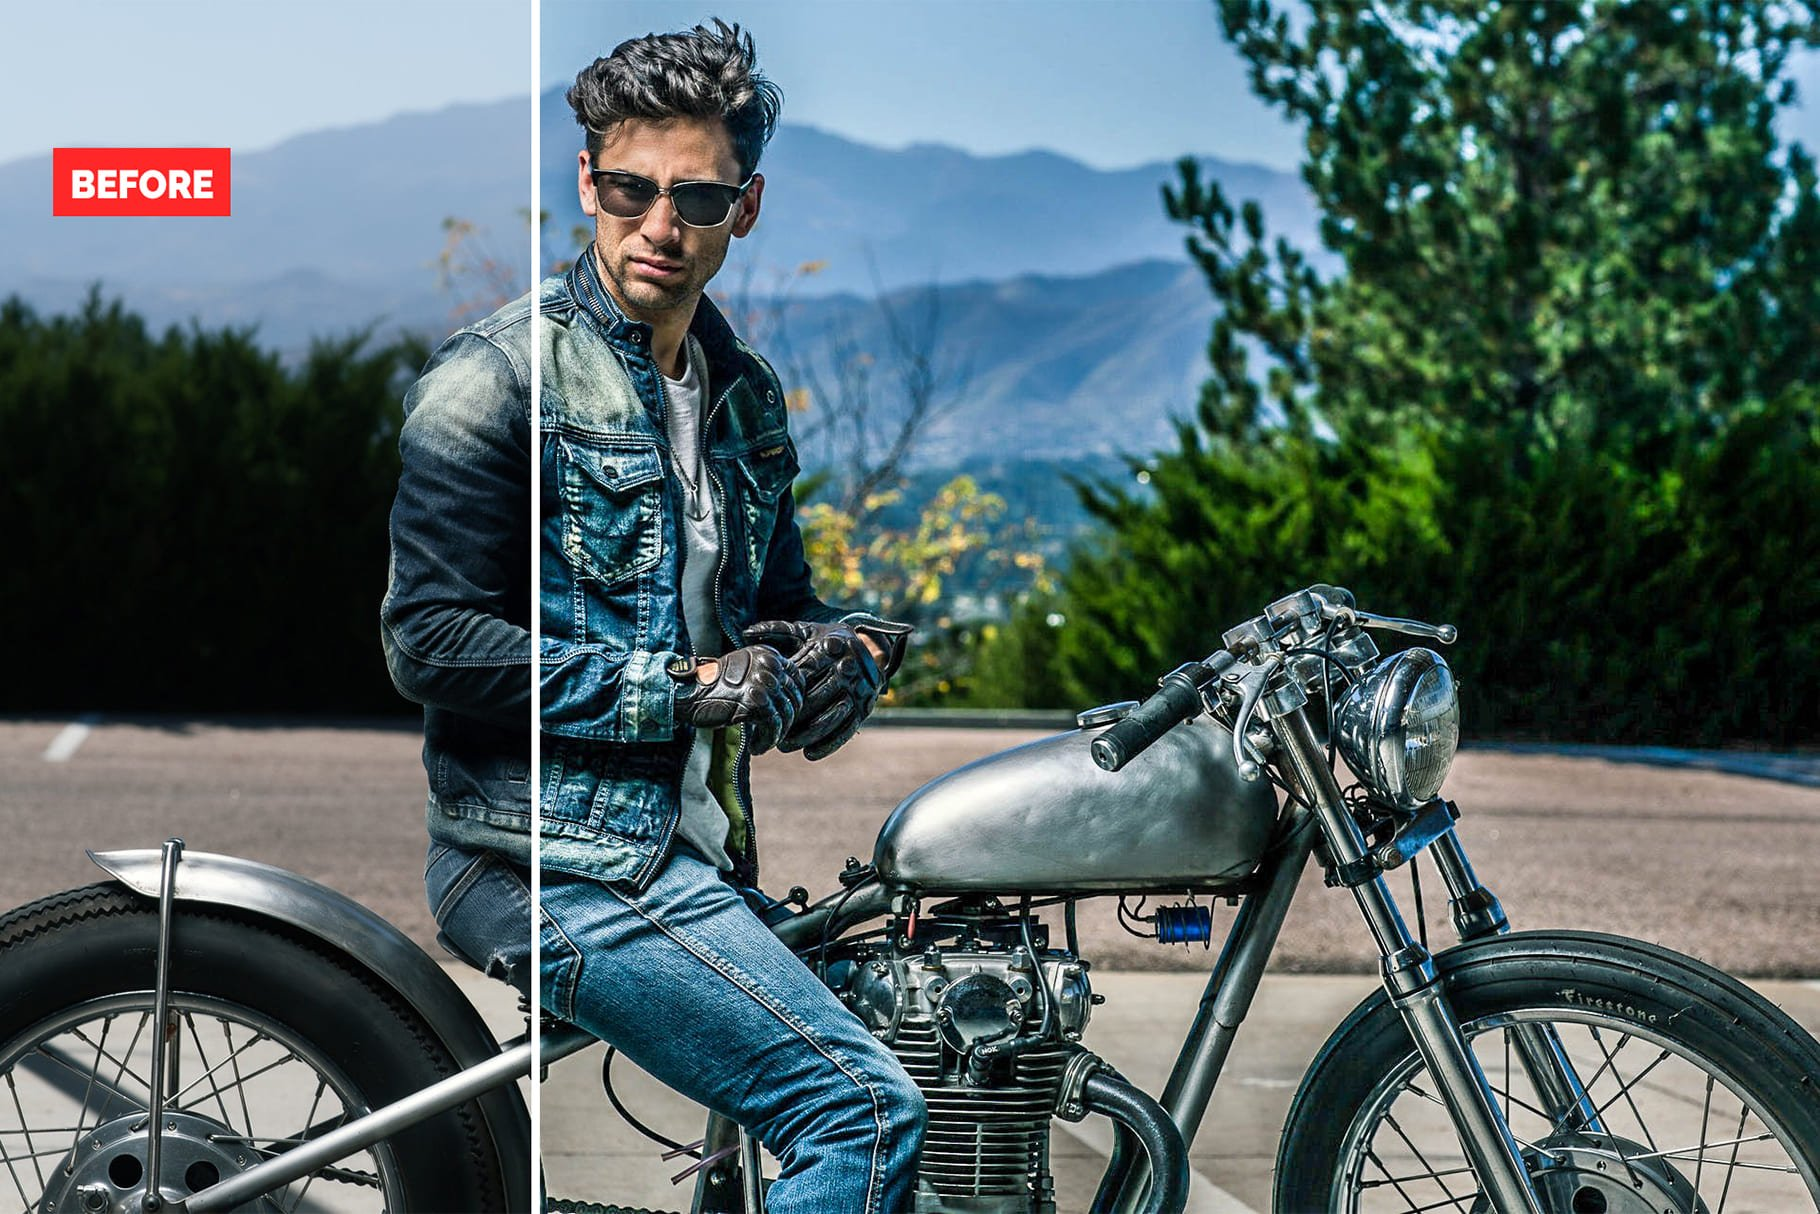 Guy on a motorcycle. 120+ Professional HDR Photoshop Actions Collection.